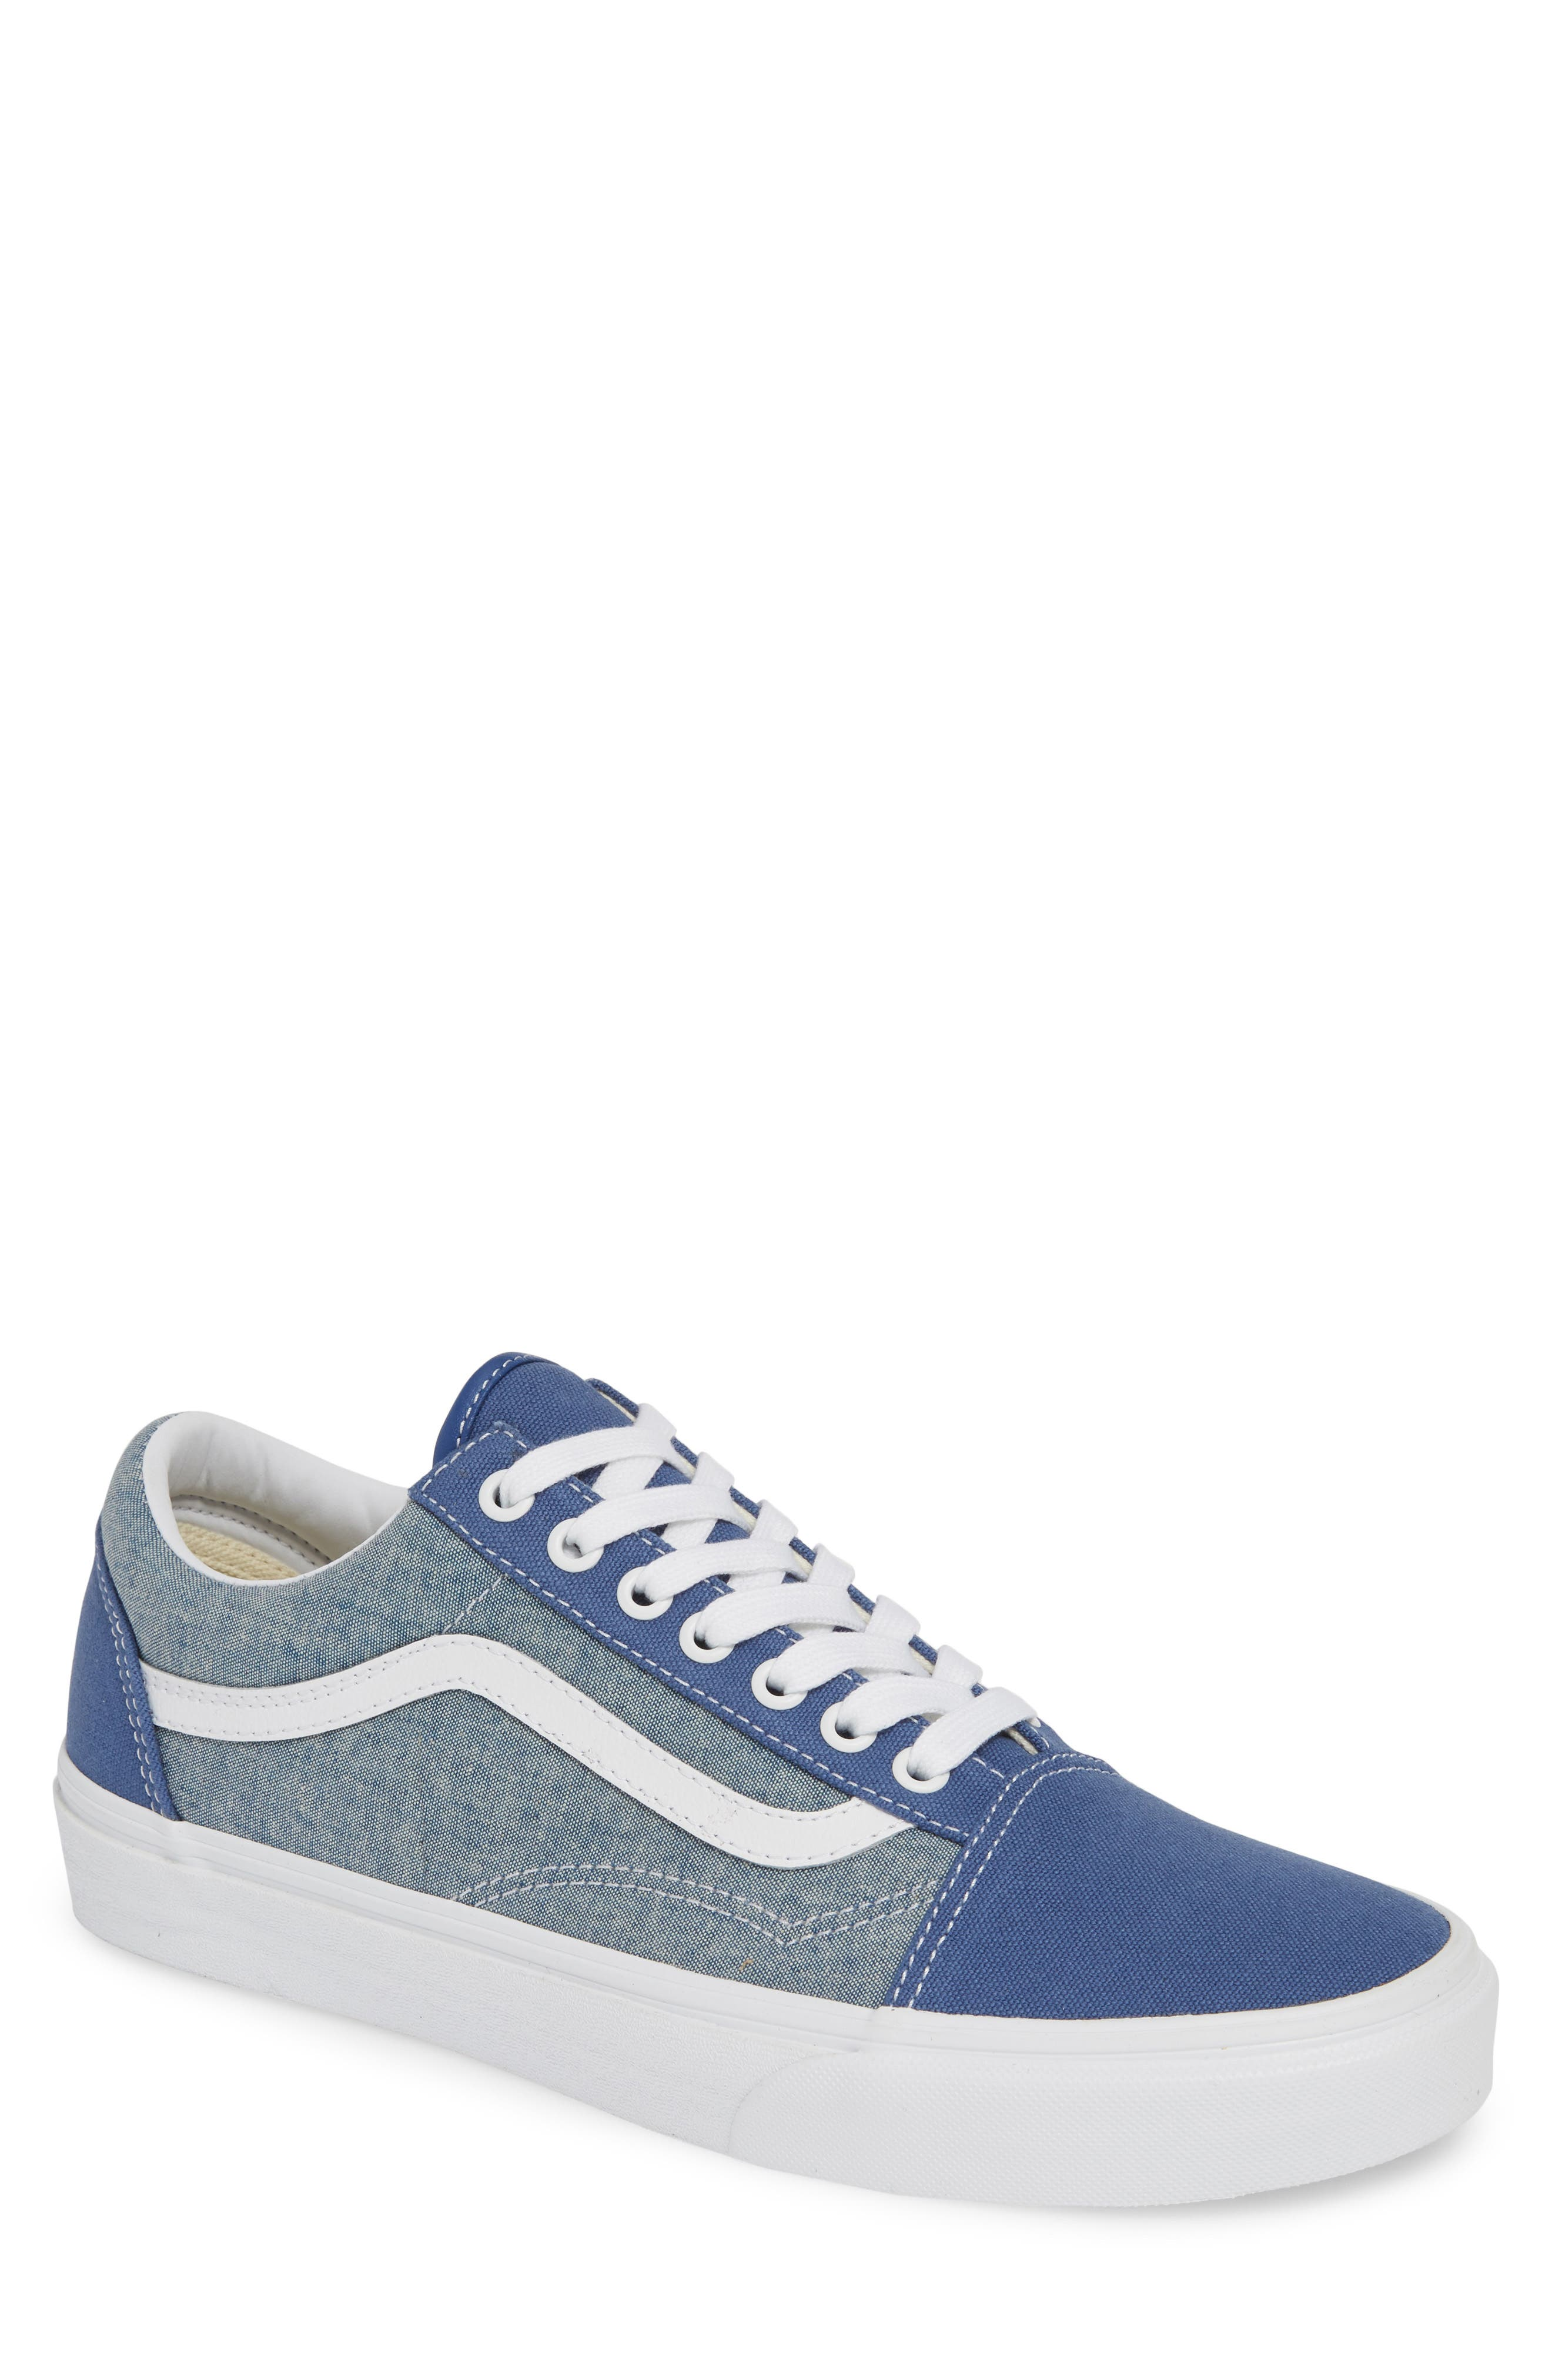 VANS Old Skool Sneaker, Main, color, CANVAS NAVY/ WHITE CHAMBRAY